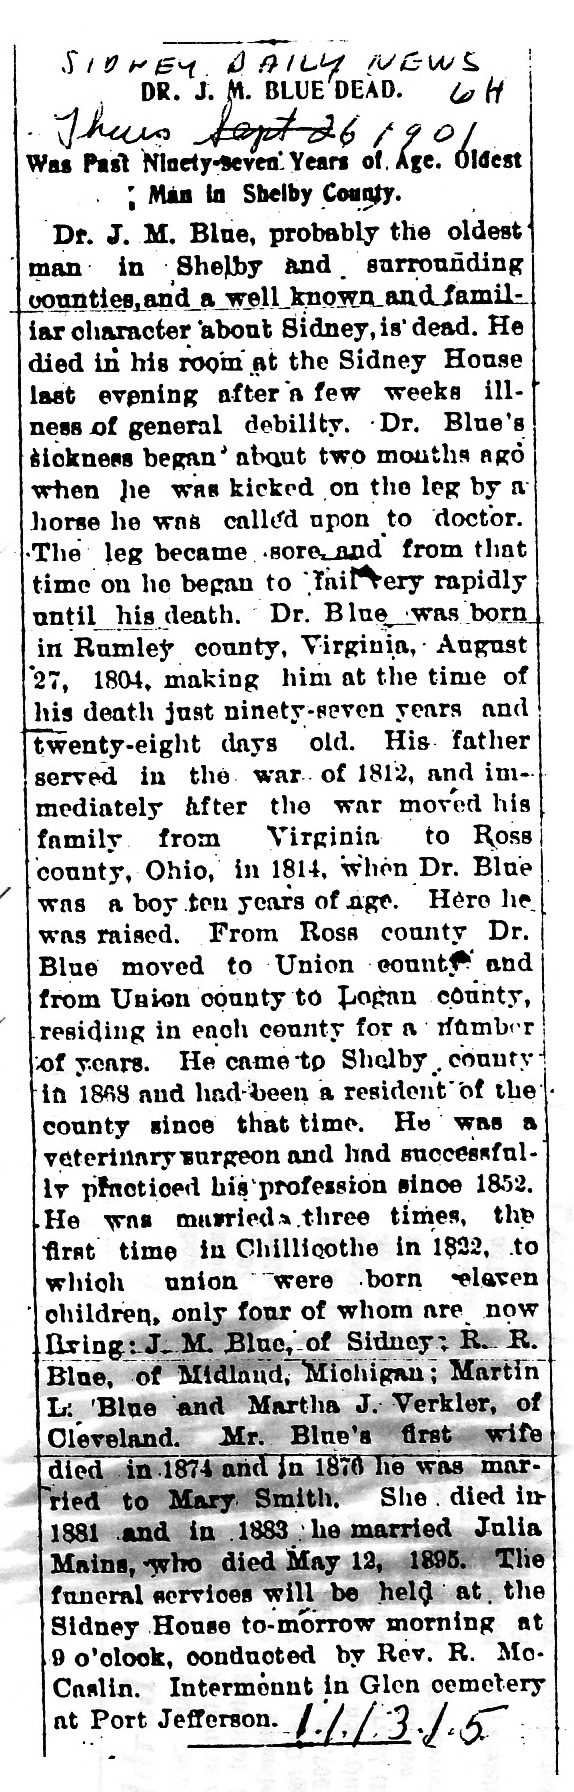 Obituary of Dr. J. M. Blue, Sidney Daily News, 26 Sept 1901, Page 6H. Photocopy courtesy of William H. Blue, Seattle, WA. Received 26 April 2013.